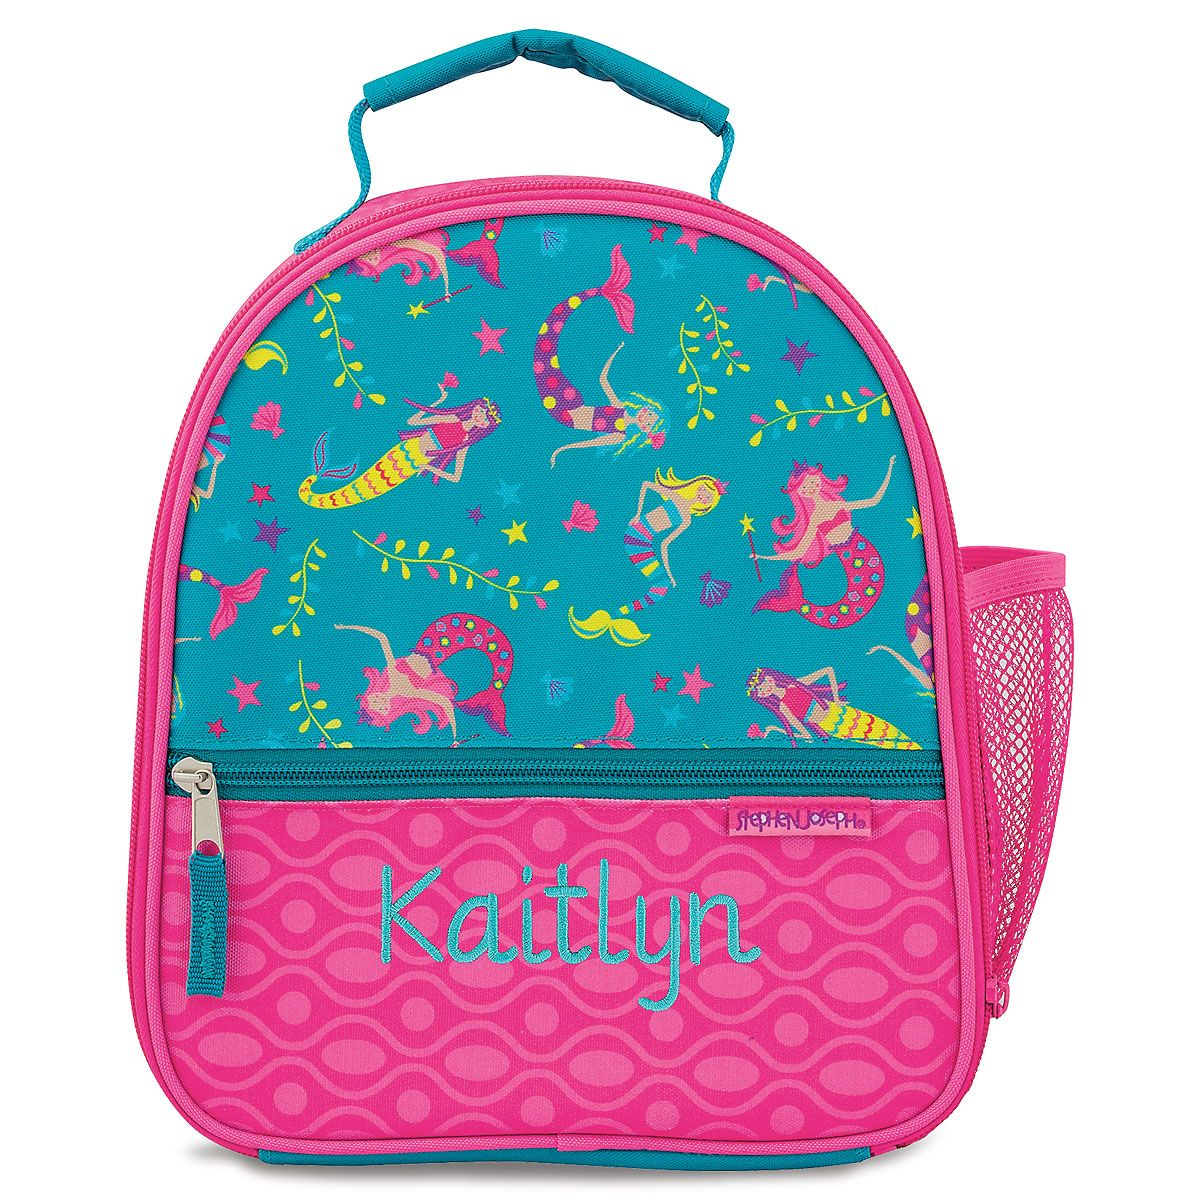 Personalized Mermaid Lunch Bag by Stephen Joseph®